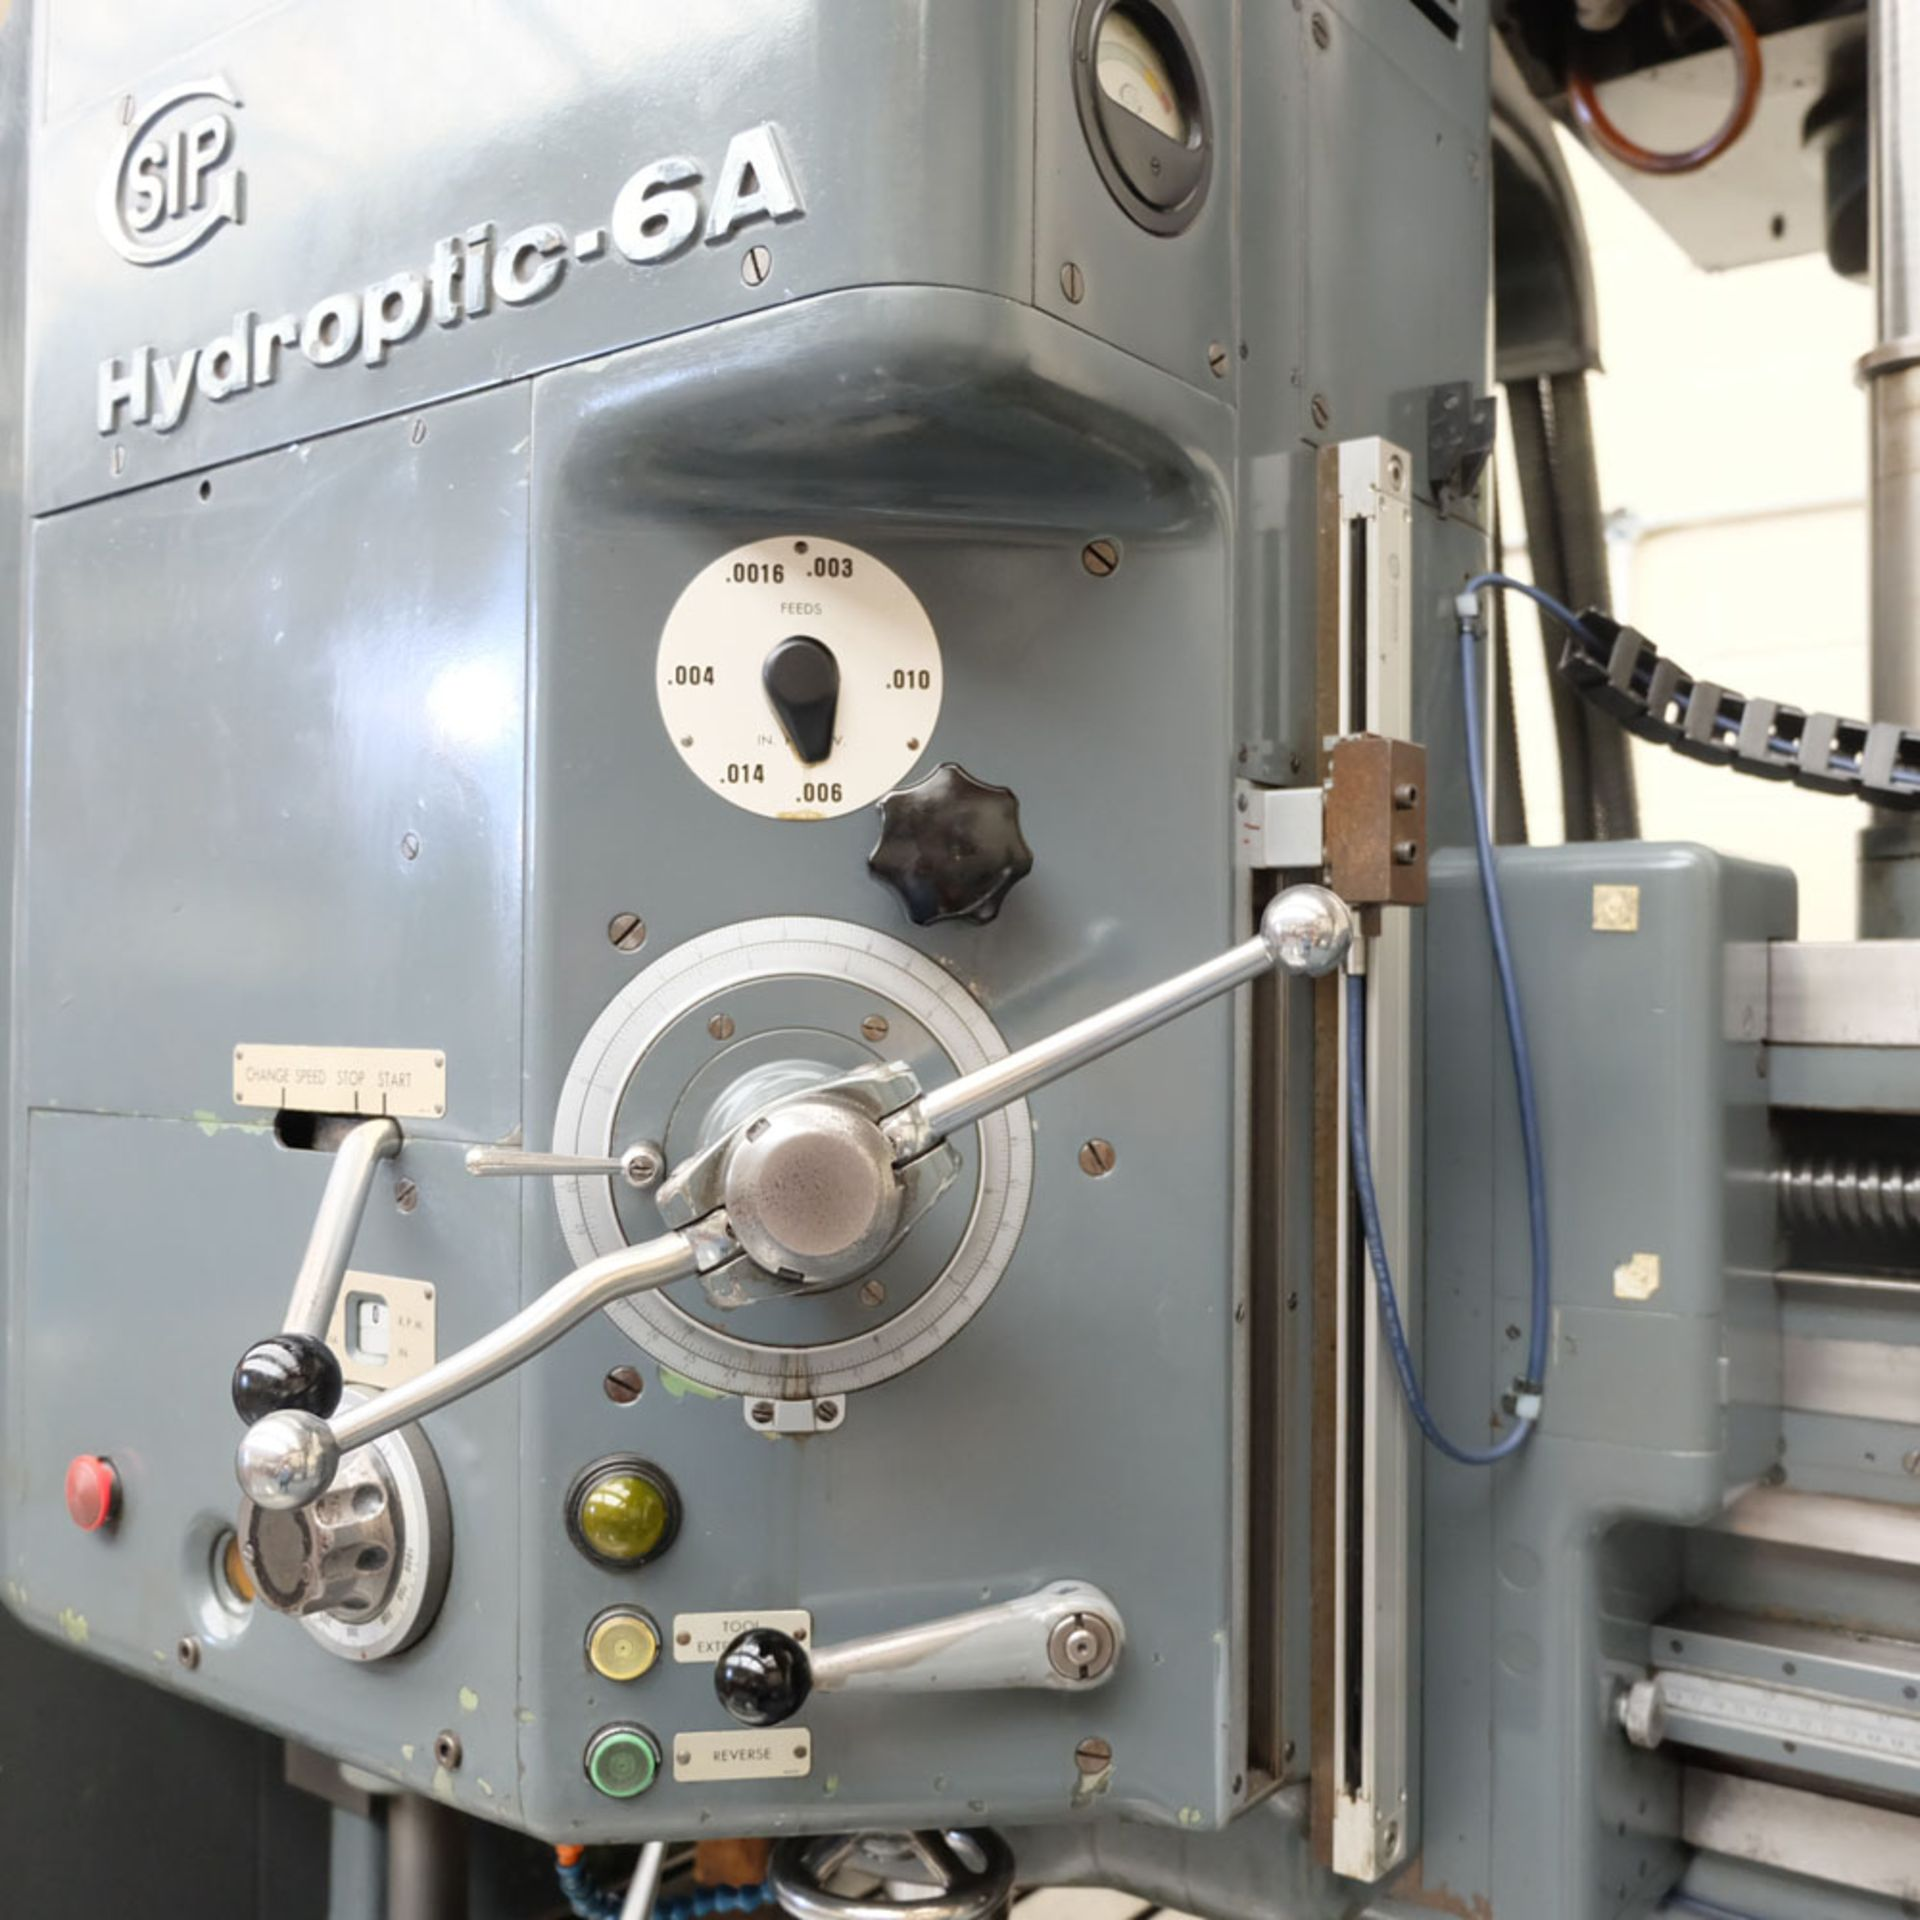 SIP Genevoise Hydroptic - 6A High Precision Jig Boring And Milling Machine. - Image 5 of 25